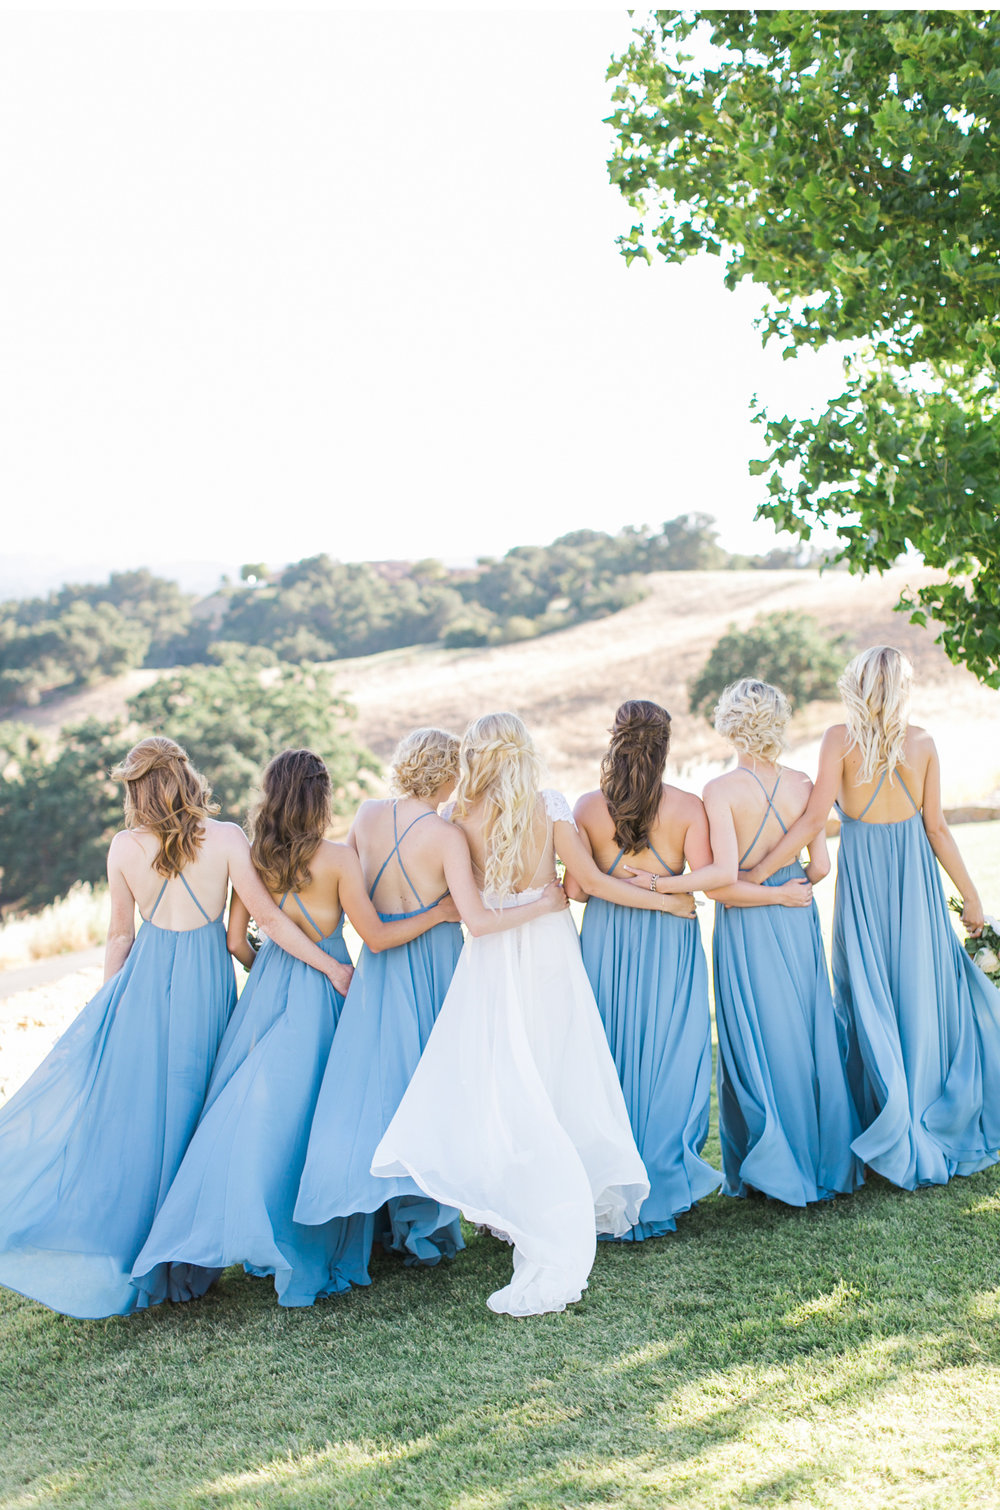 Paso-Robles-Style-Me-Pretty-The-Knot-Wedding-Natalie-Schutt-Photography's-Wedding_05.jpg